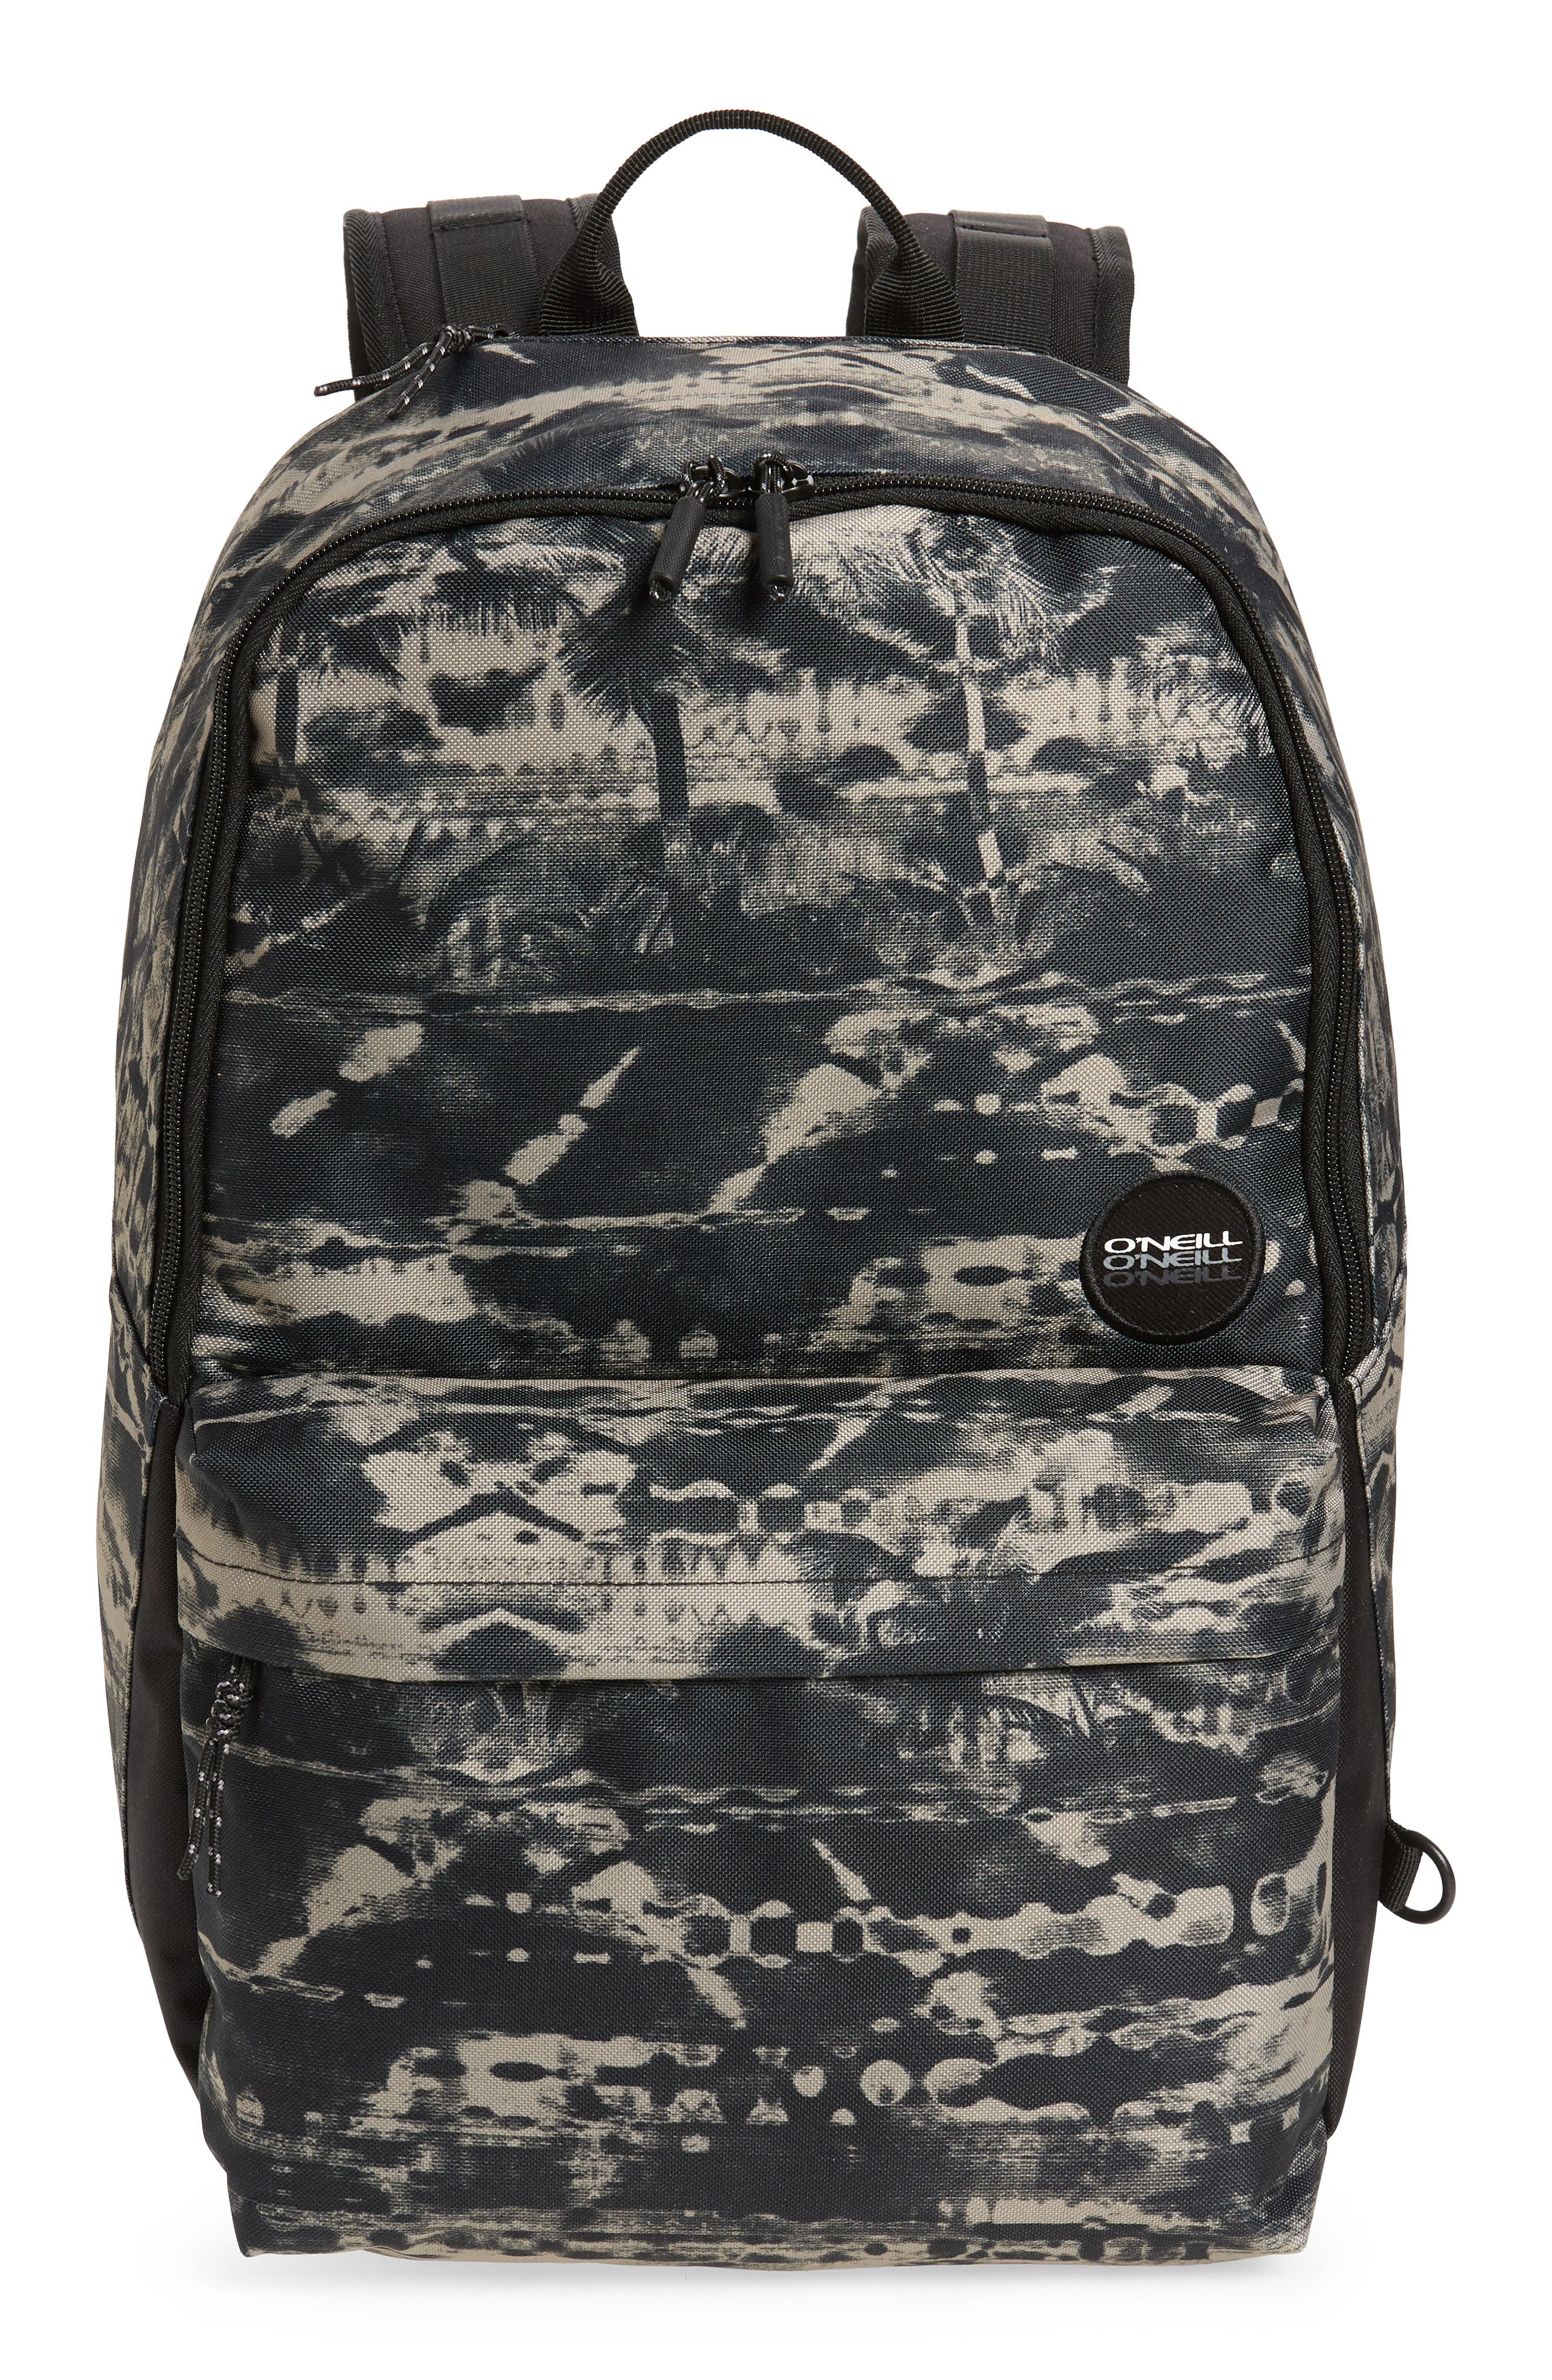 Transfer Backpack,                         Main,                         color, DARK ARMY